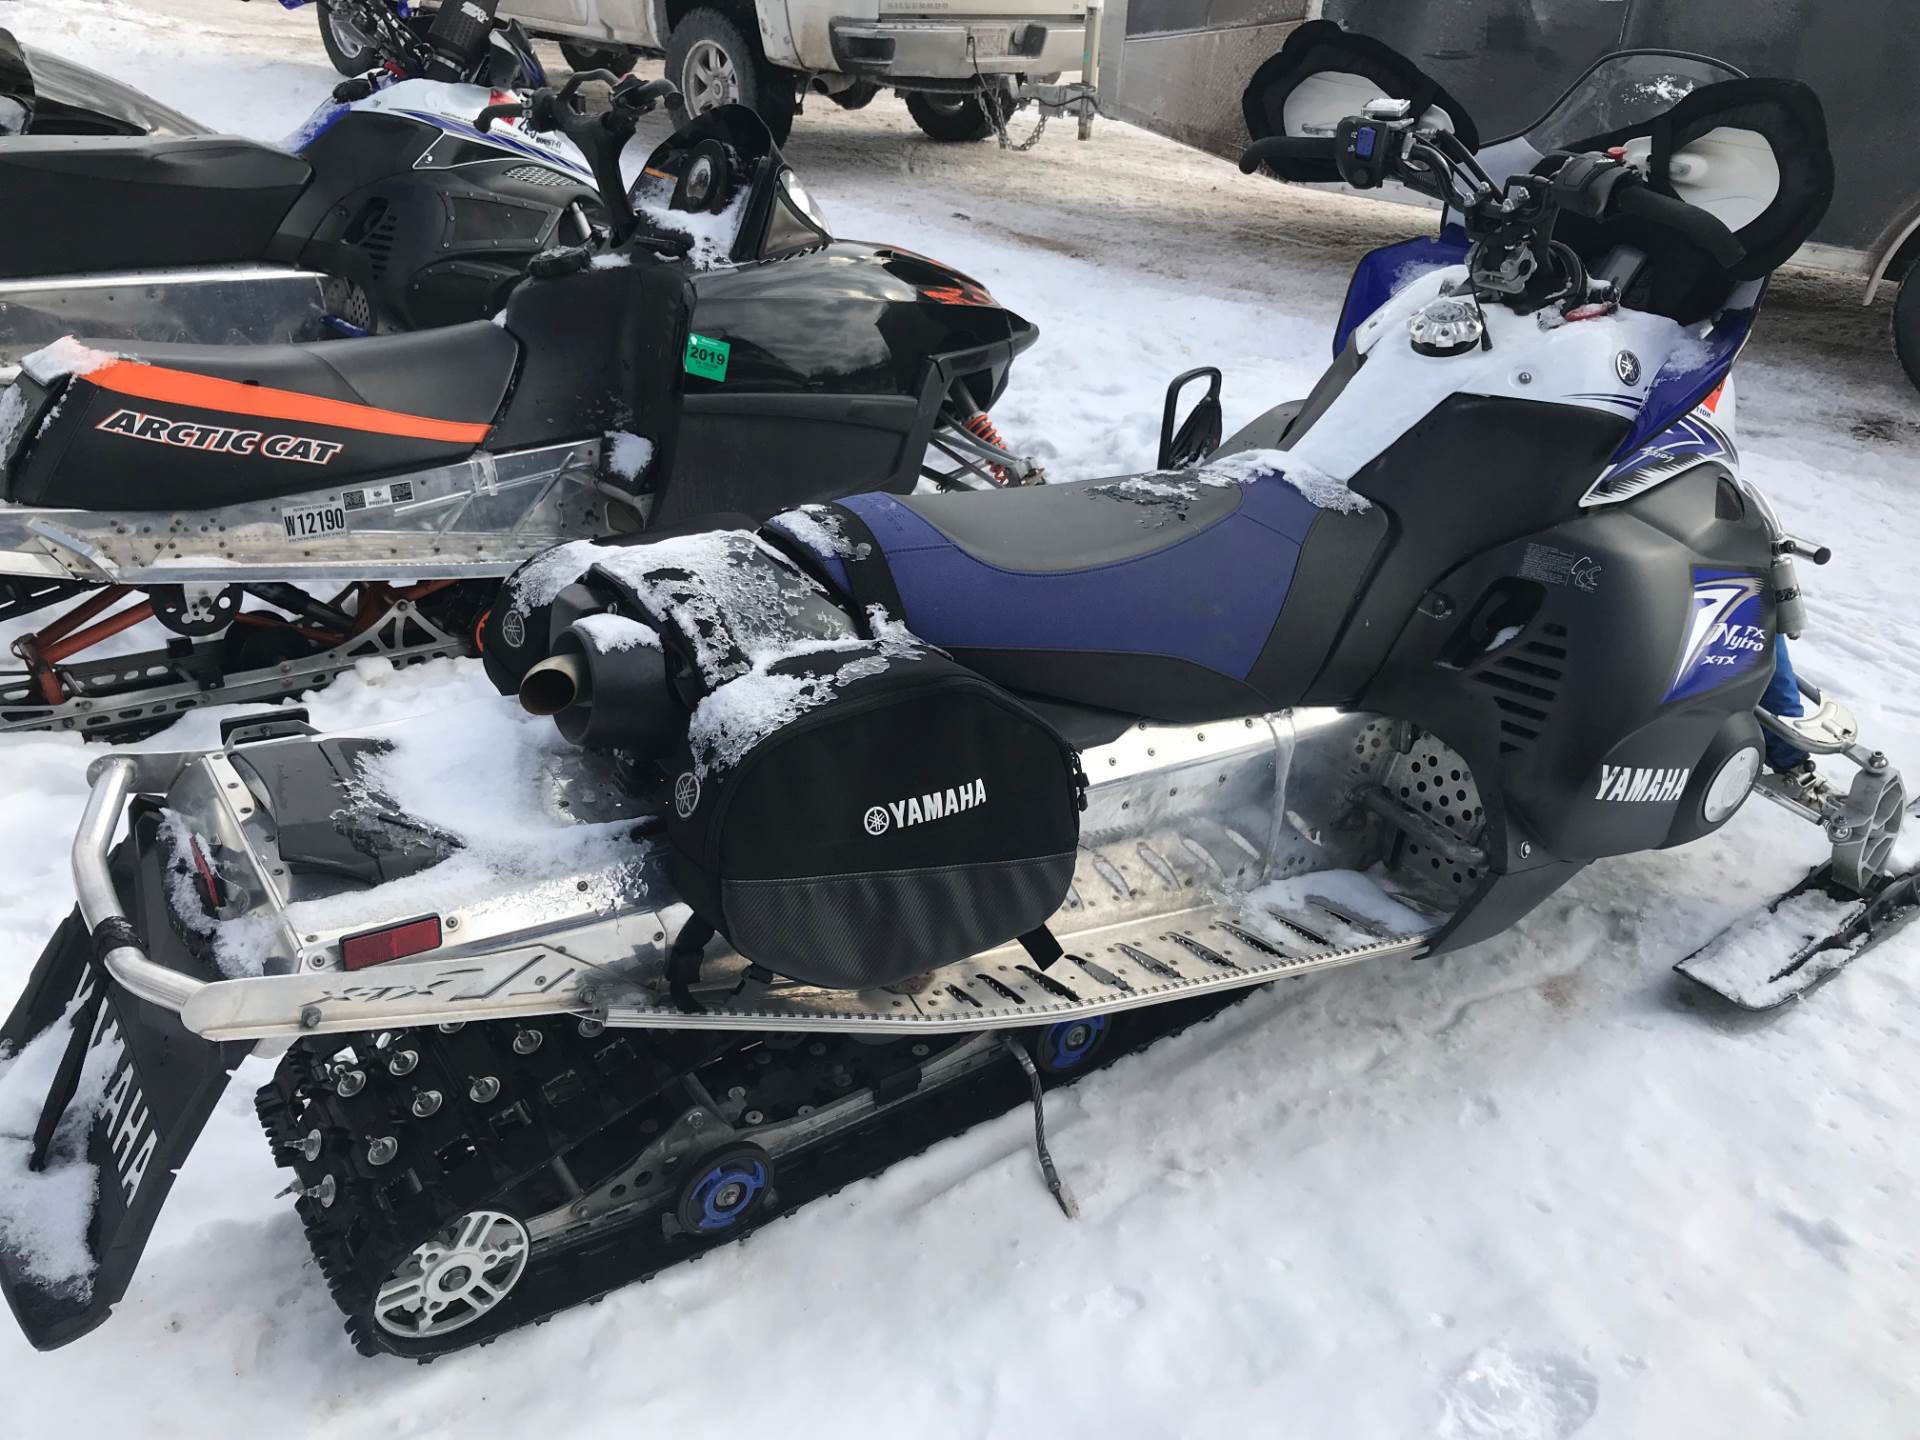 2010 Yamaha FX Nytro XTX in Hancock, Michigan